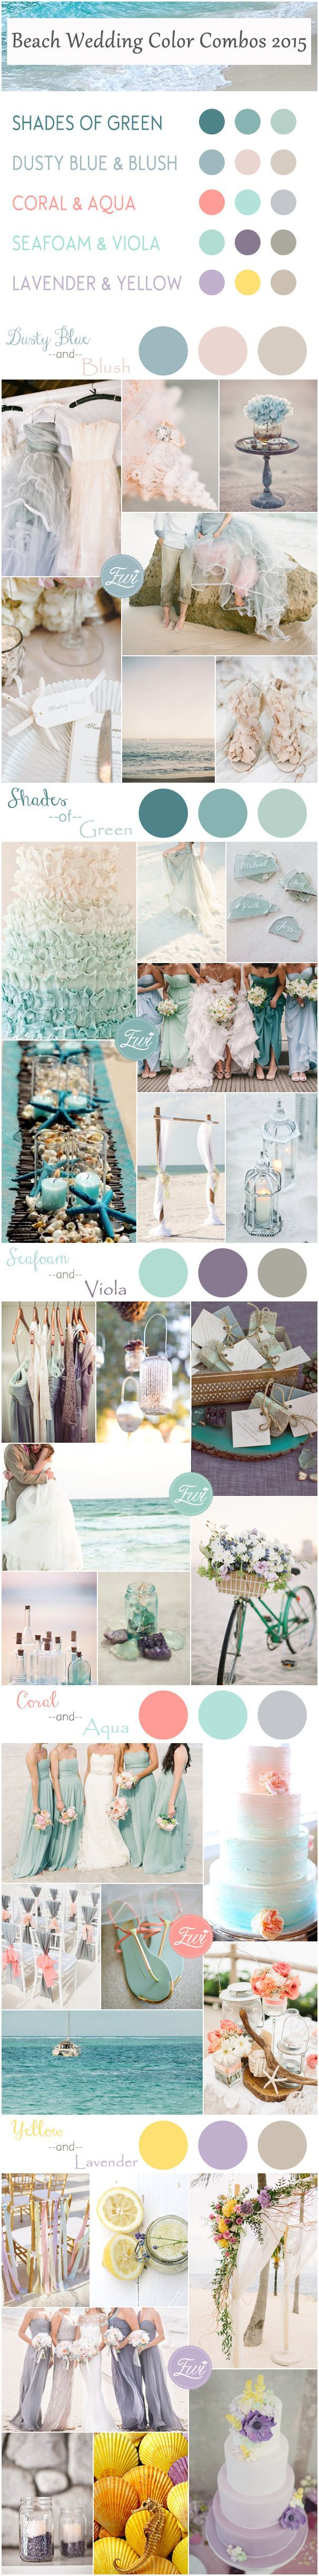 50 best Wedding ideas images on Pinterest | Color script, Wedding ...